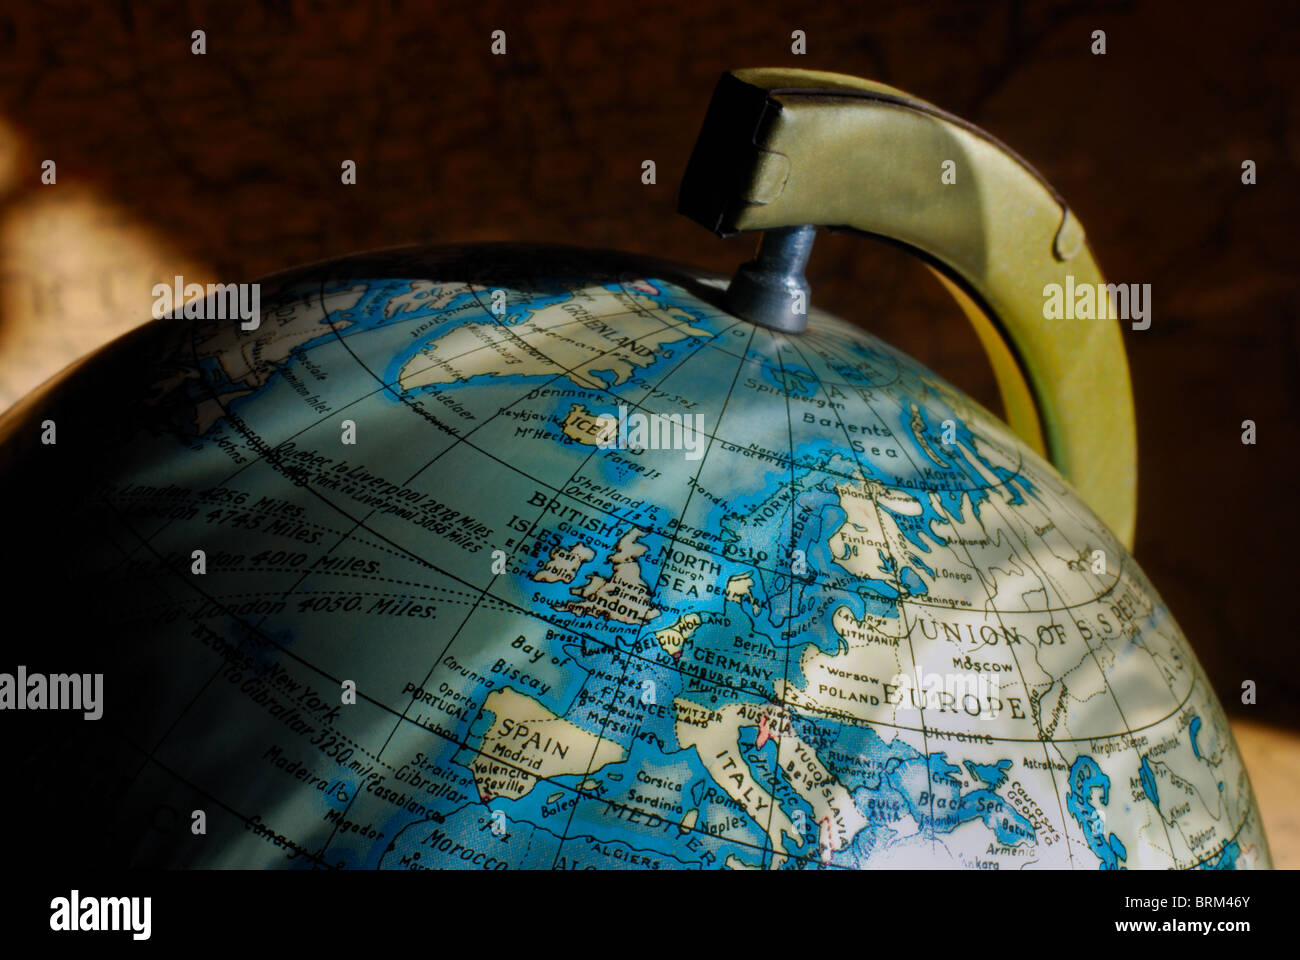 A small vintage globe of the Earth, highlighting the Northern Hemisphere and Europe, with an antique map as a background. - Stock Image